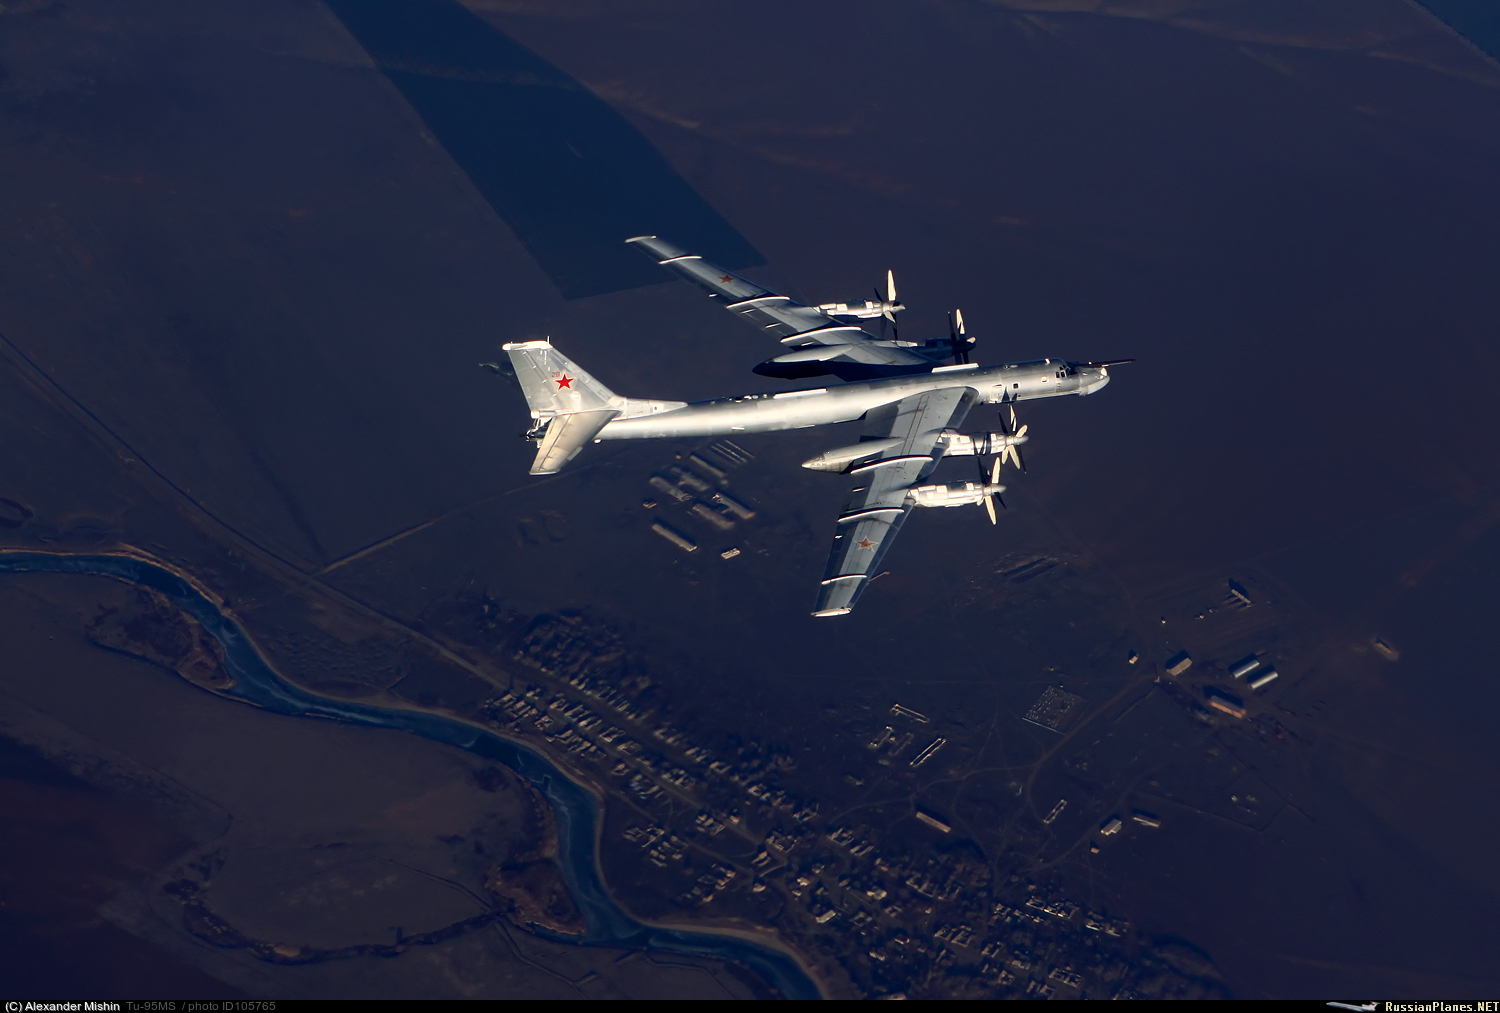 Russian Military Photos and Videos #3 105765